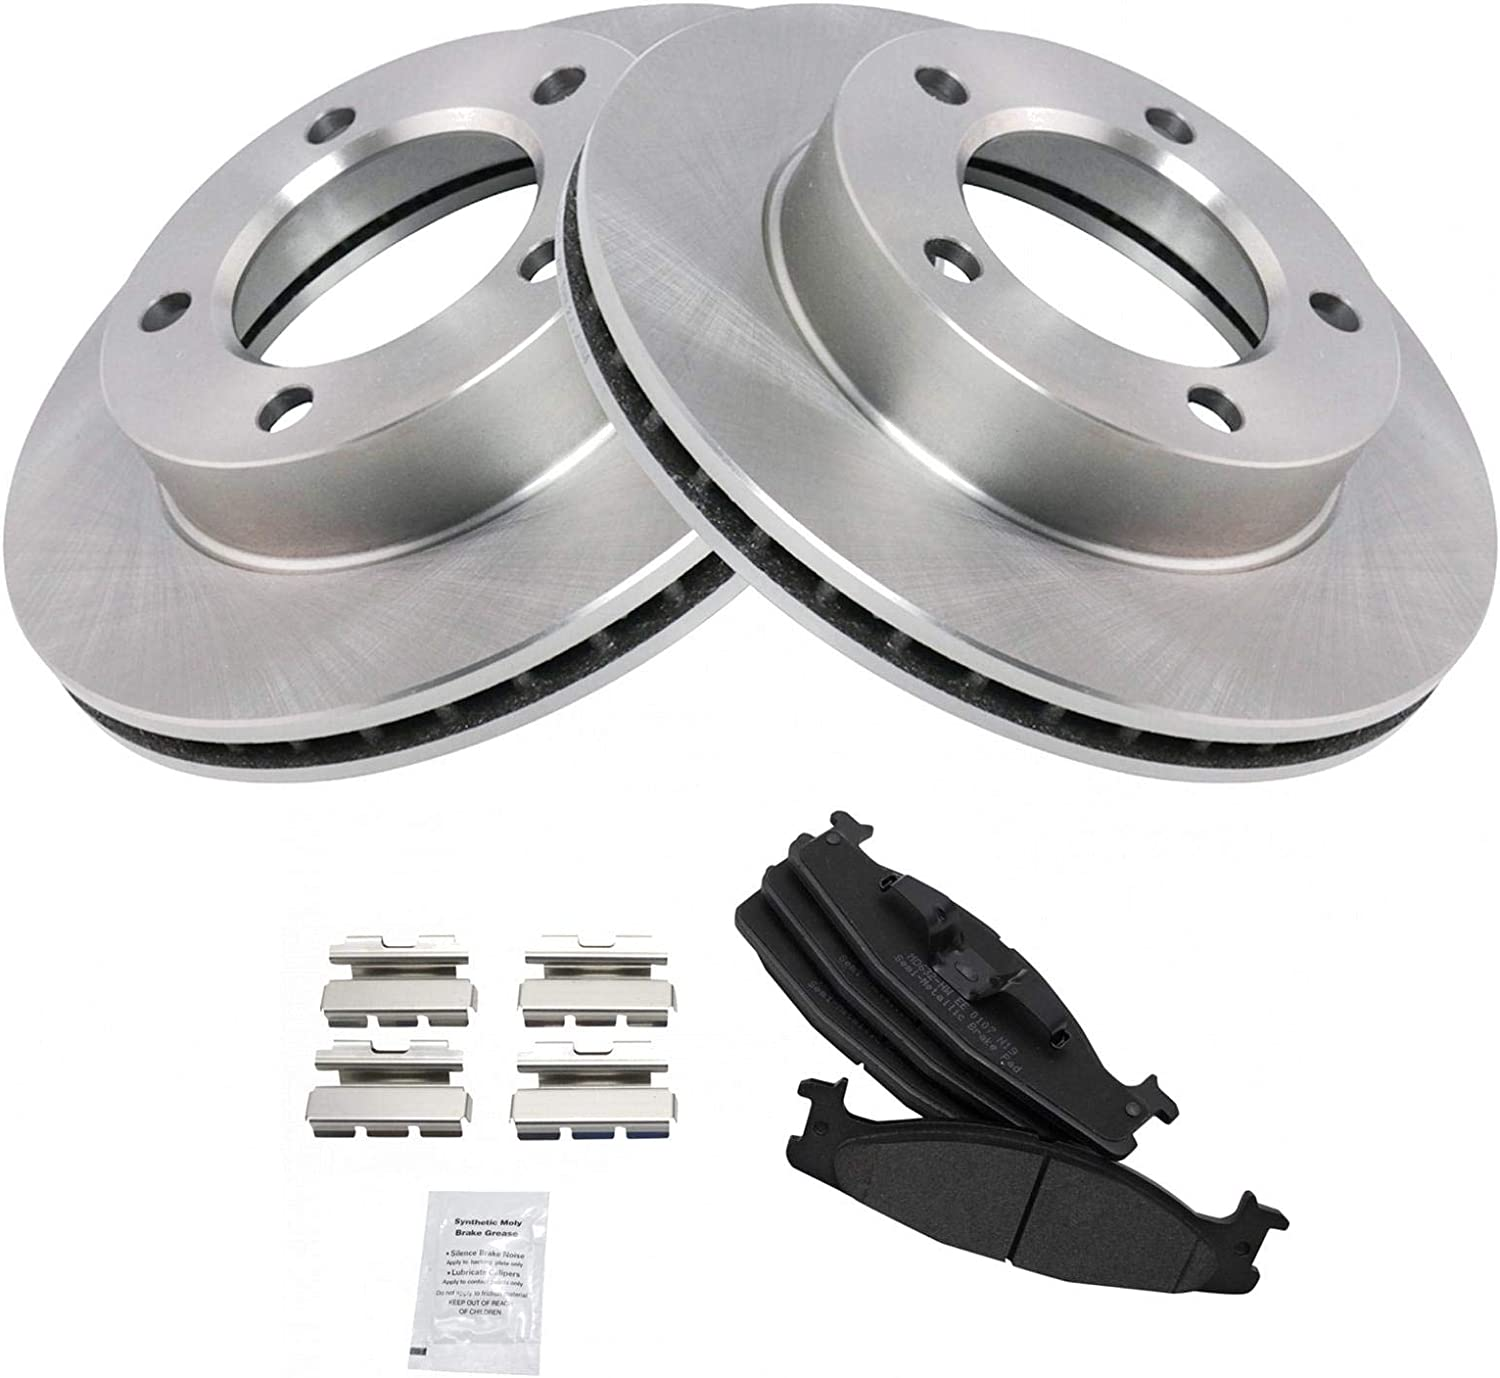 F150 2WD 94-96 FRONT Drilled Slotted Brake Rotors Pads